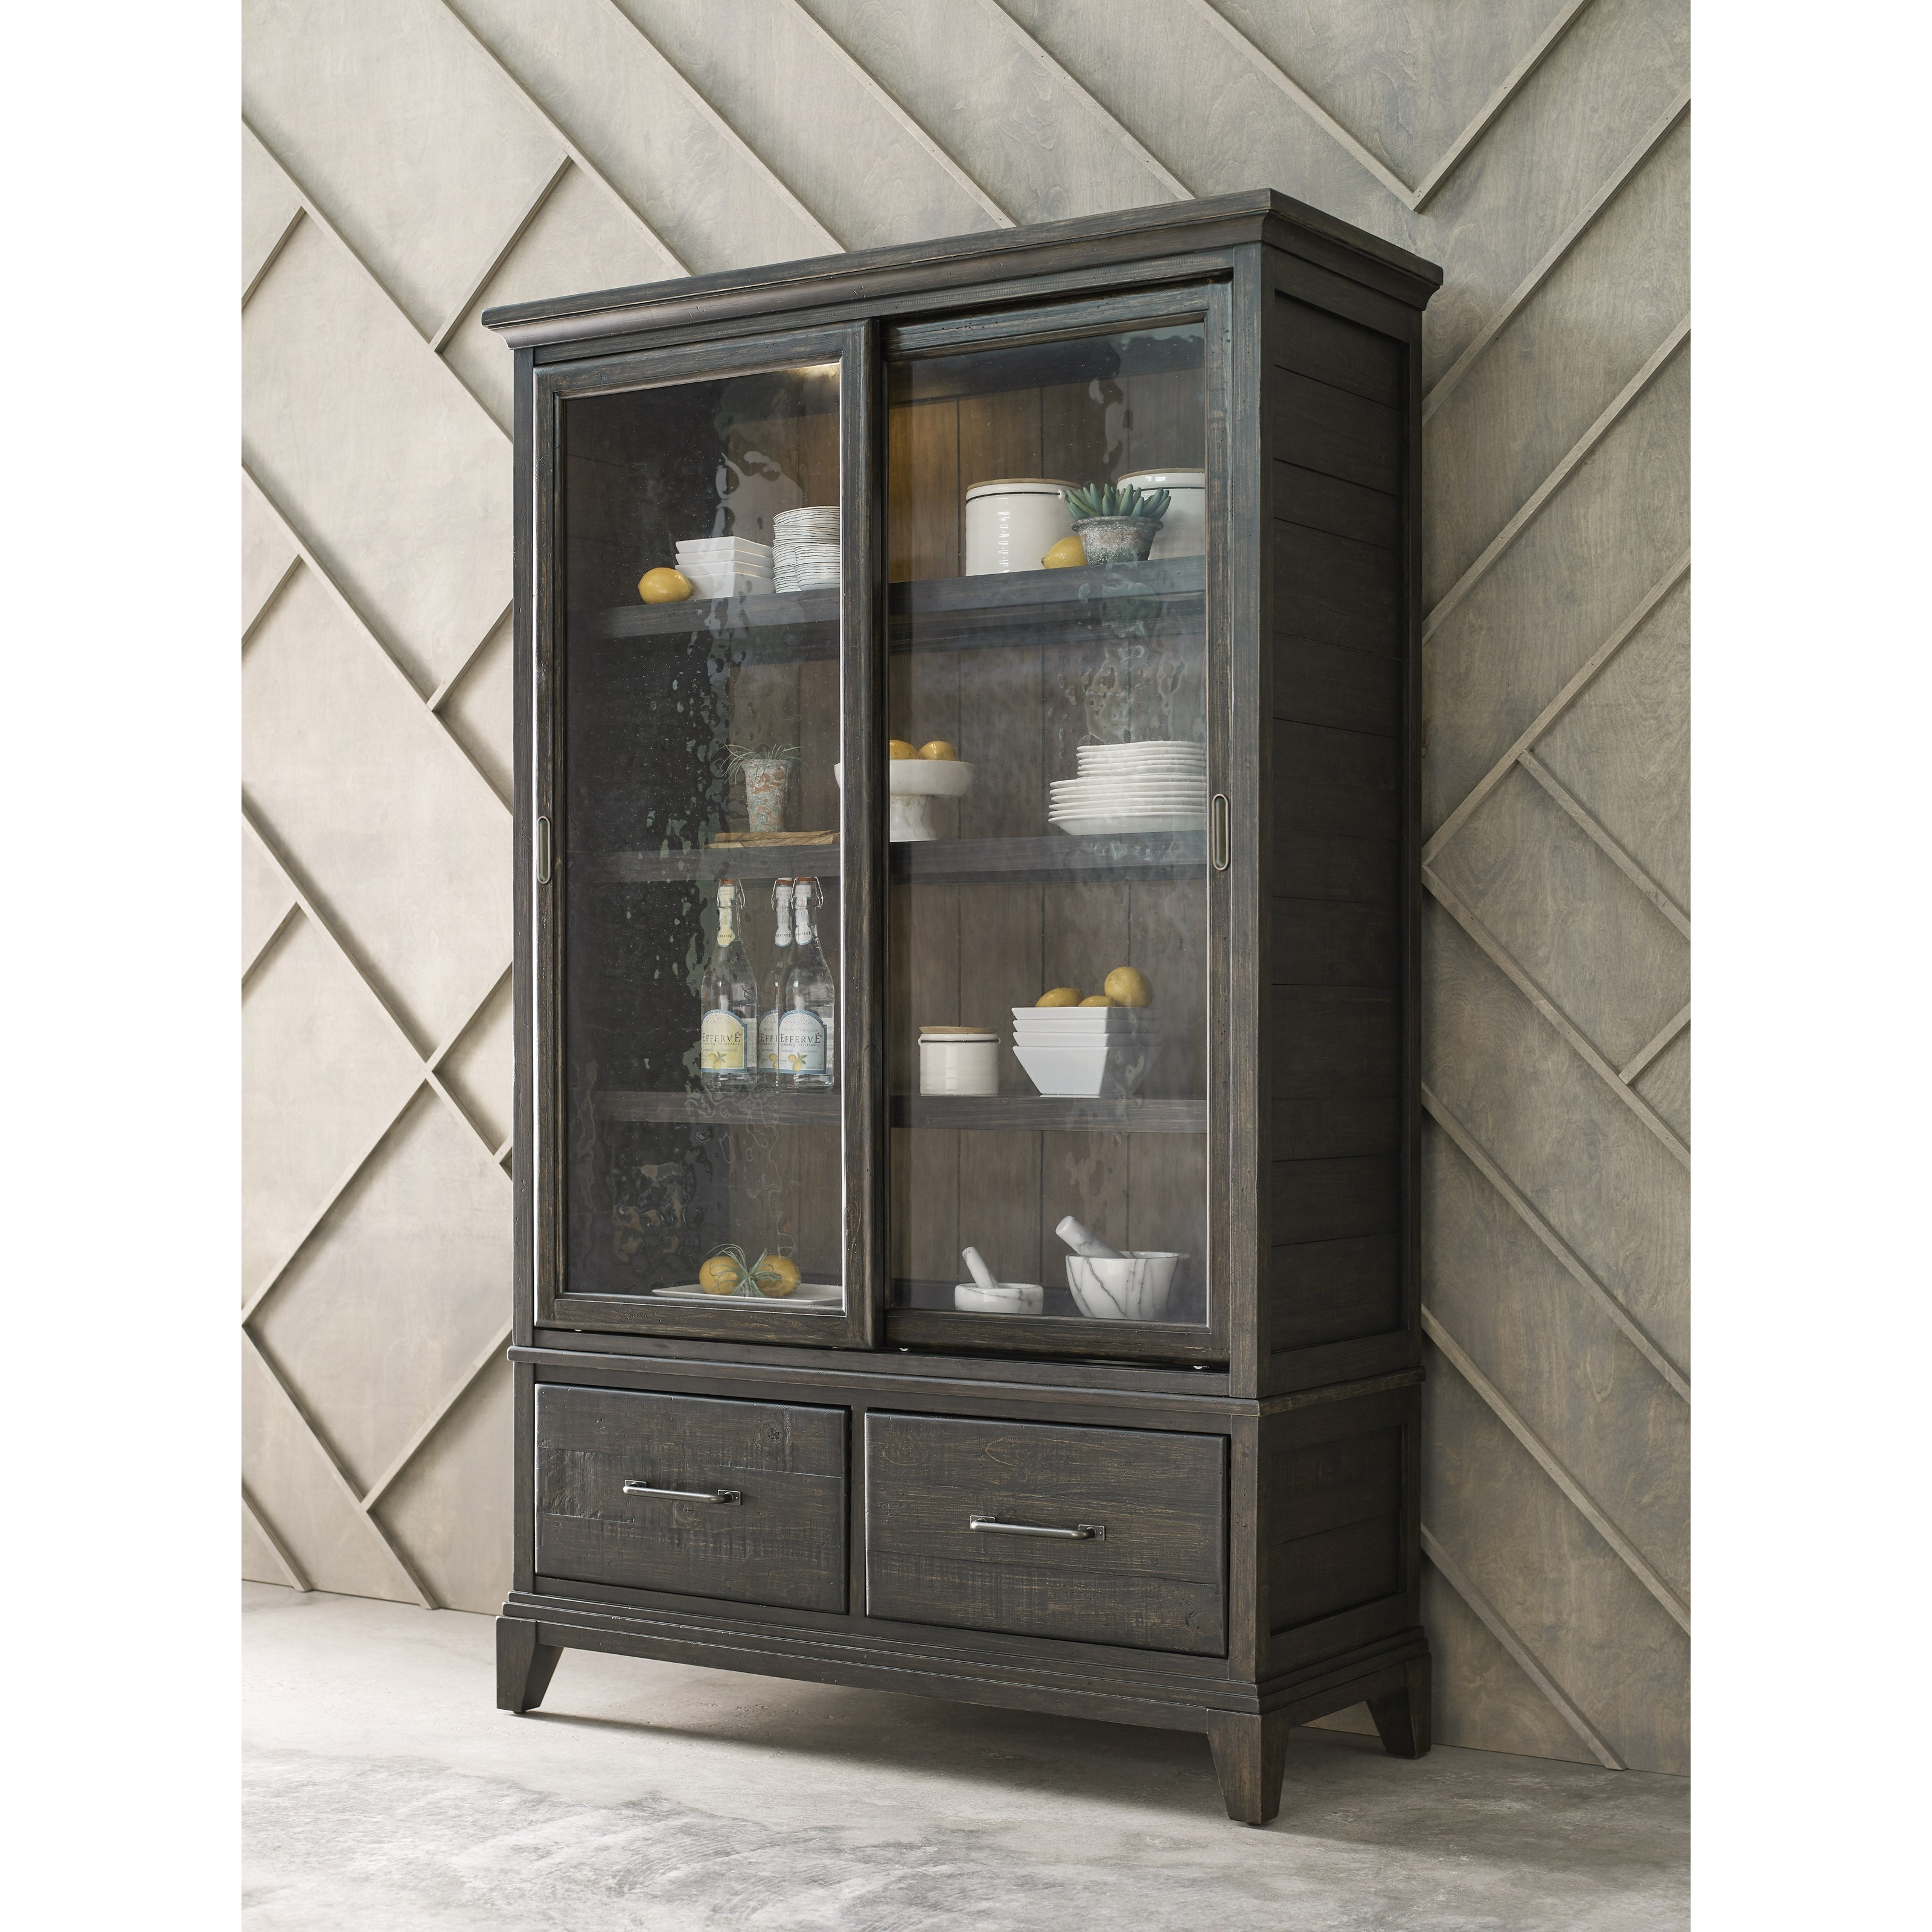 ... Kincaid Furniture Plank RoadDarby Display Cabinet ...